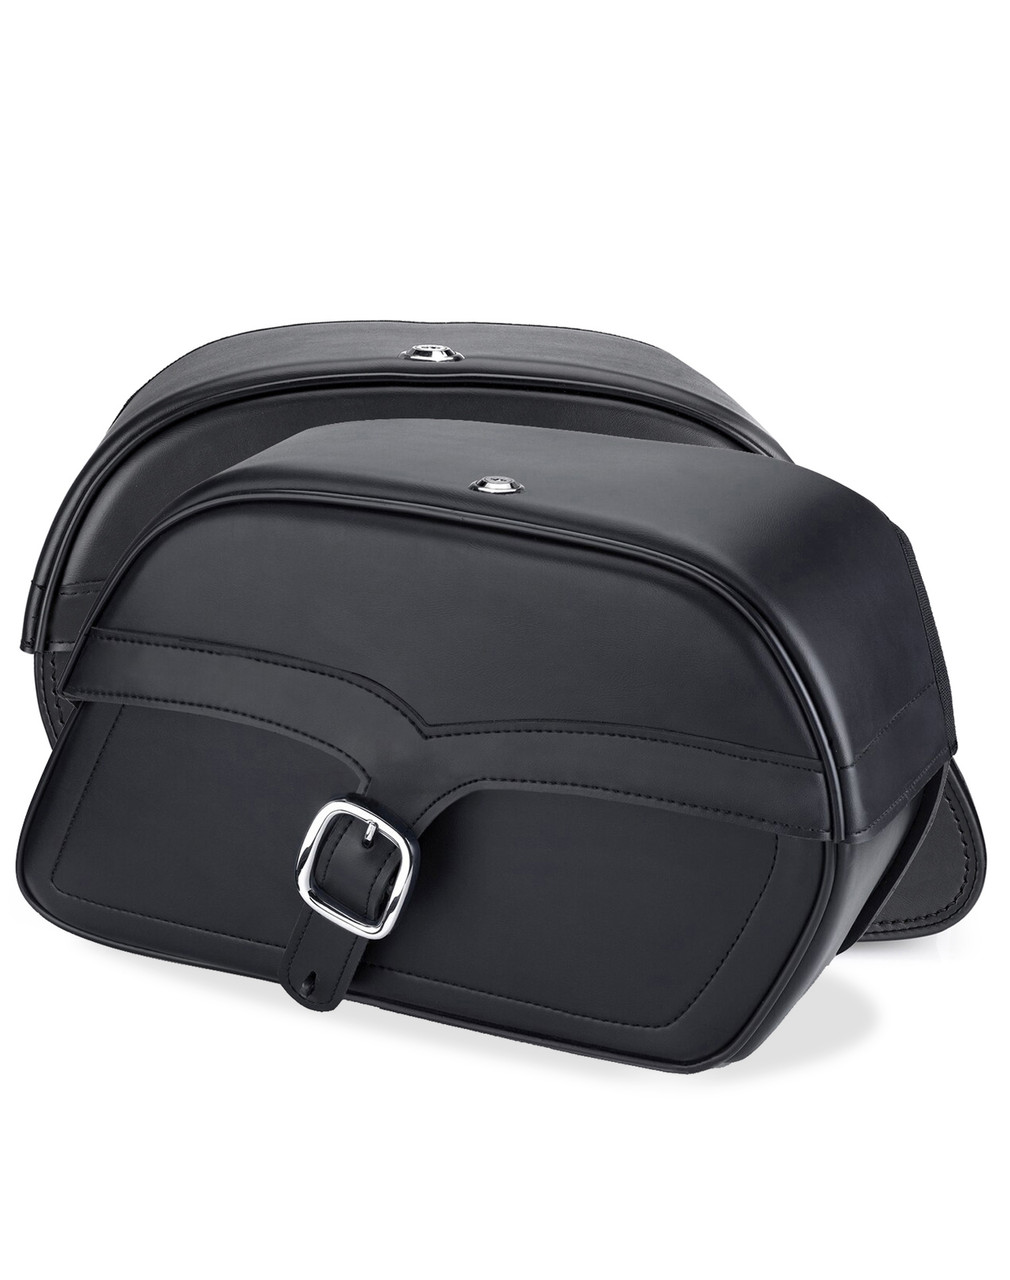 Viking Shock Cutout Single Strap Slanted Large Motorcycle Saddlebags For Harley Dyna Low Rider FXDL Both Bags View